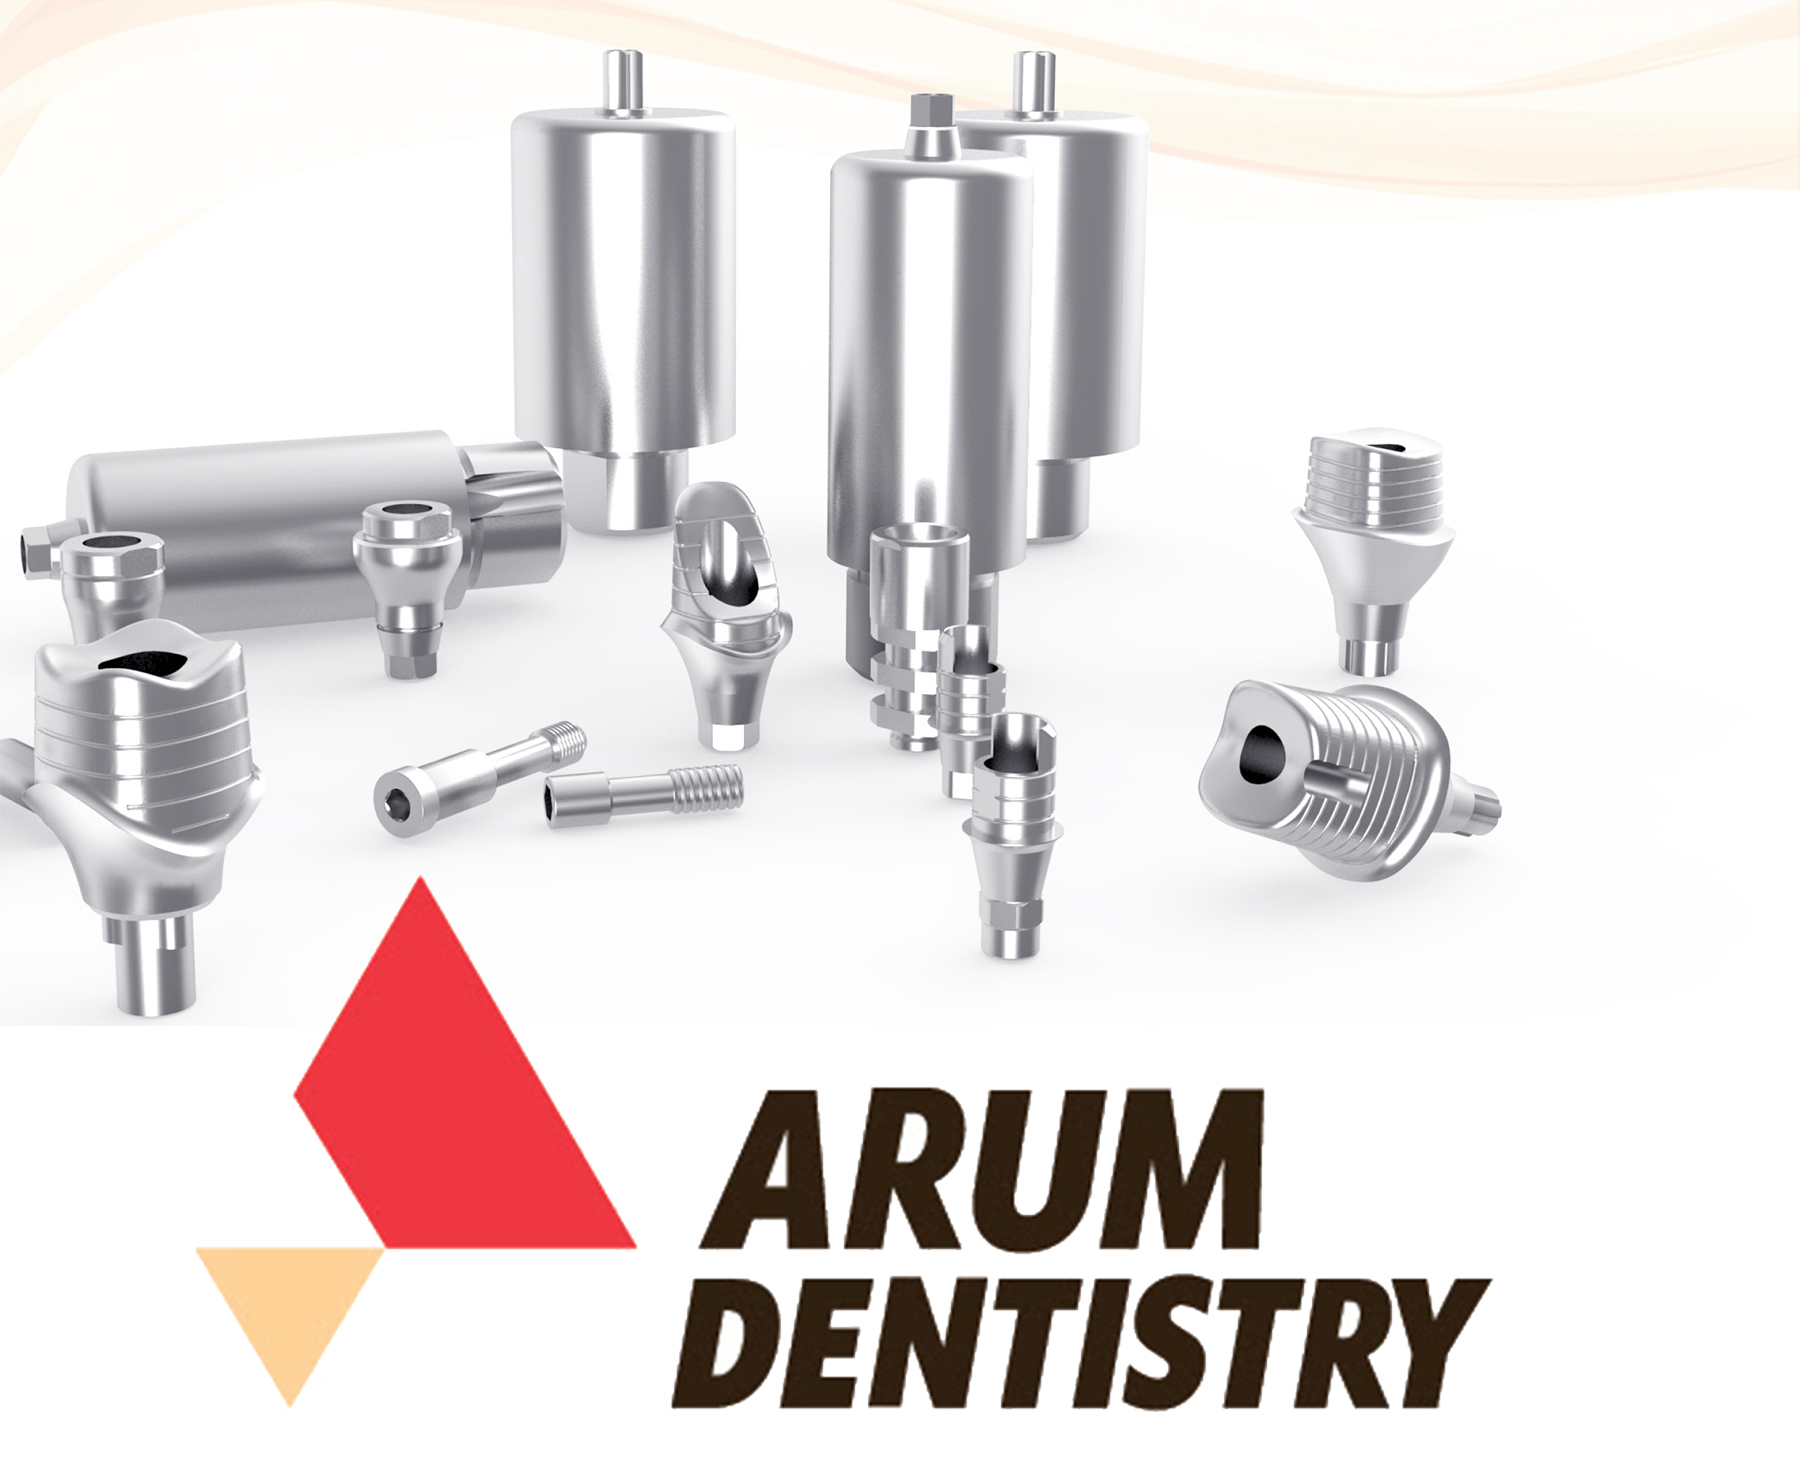 FDA Cleared Implant Components from Arum Dentistry